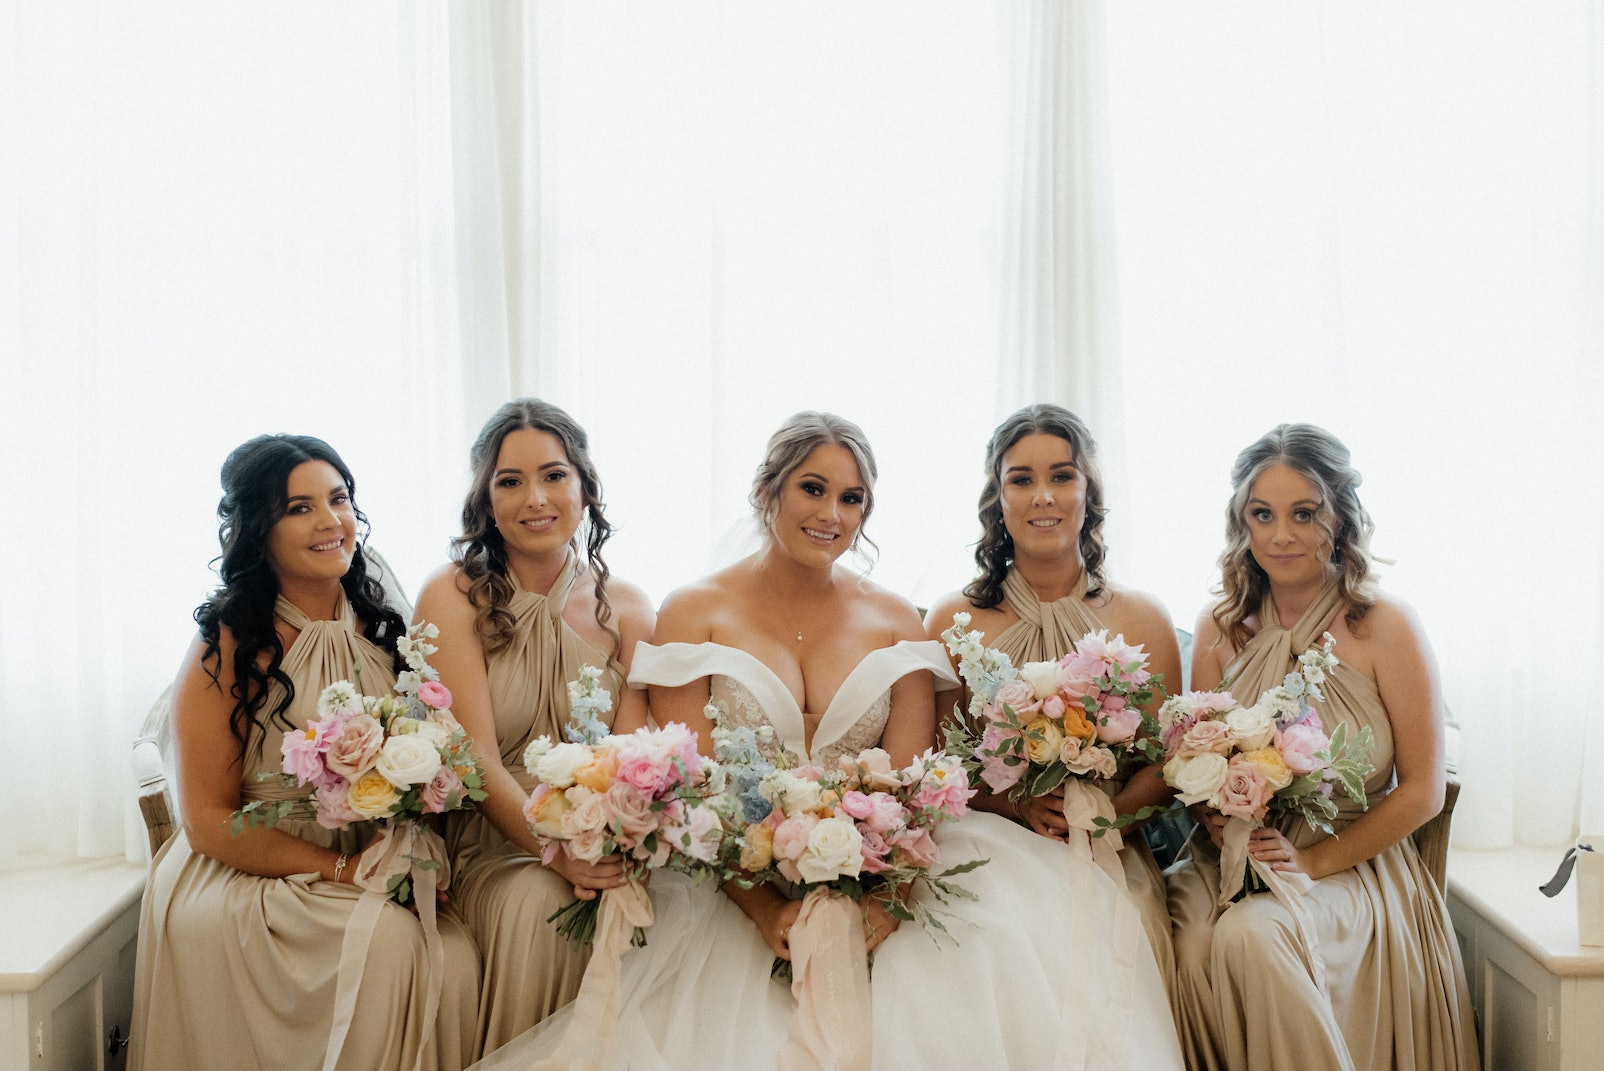 Bride and bridesmaid sitting on chaise lounge